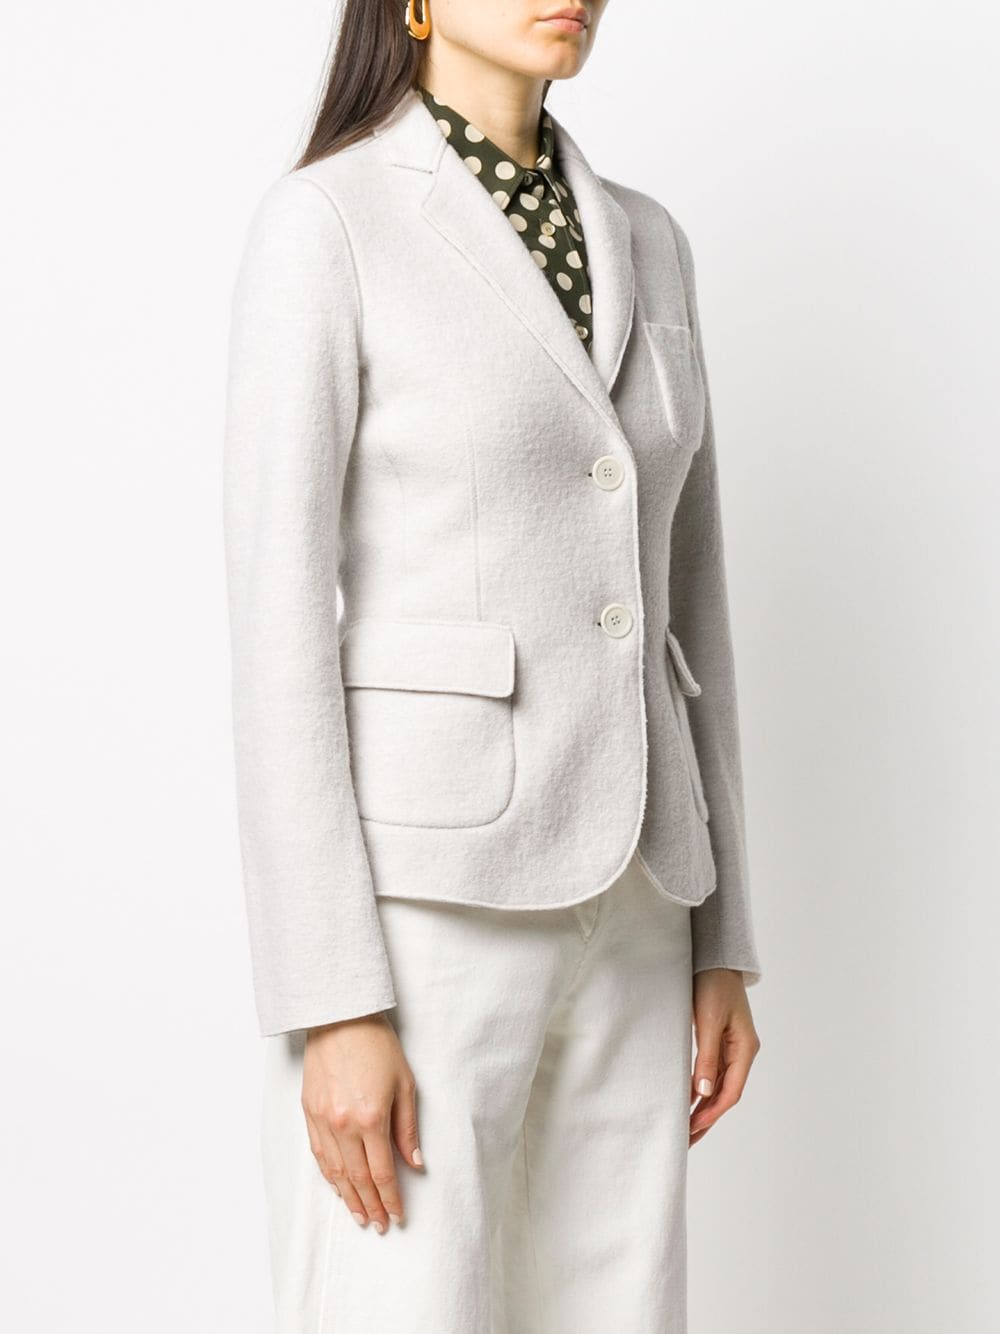 Light grey wool fitted blazer featuring notched lapels ALBERTO ASPESI |  | 0933-526851044